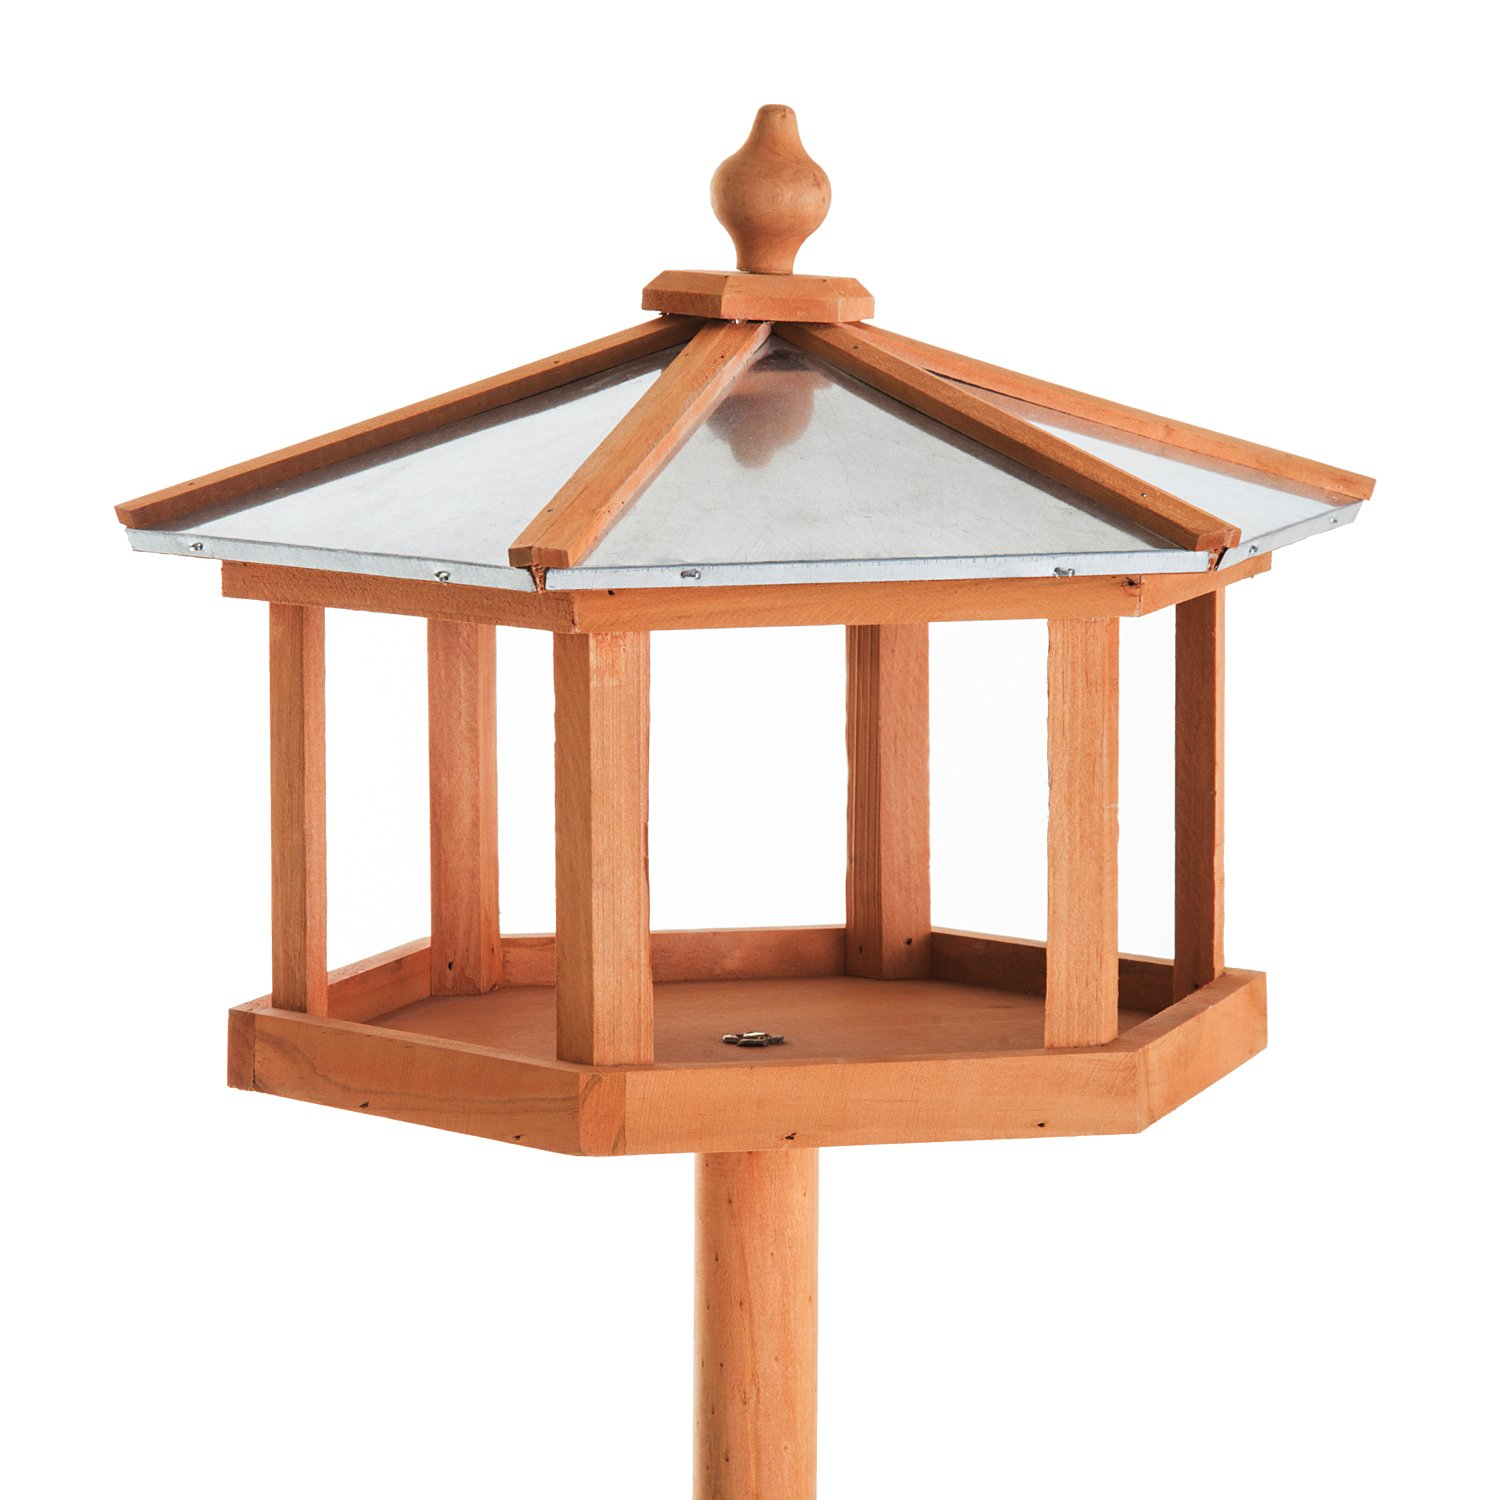 p pictures a gazebo fe large feeders feeder cool s looking white picture roof bird with here